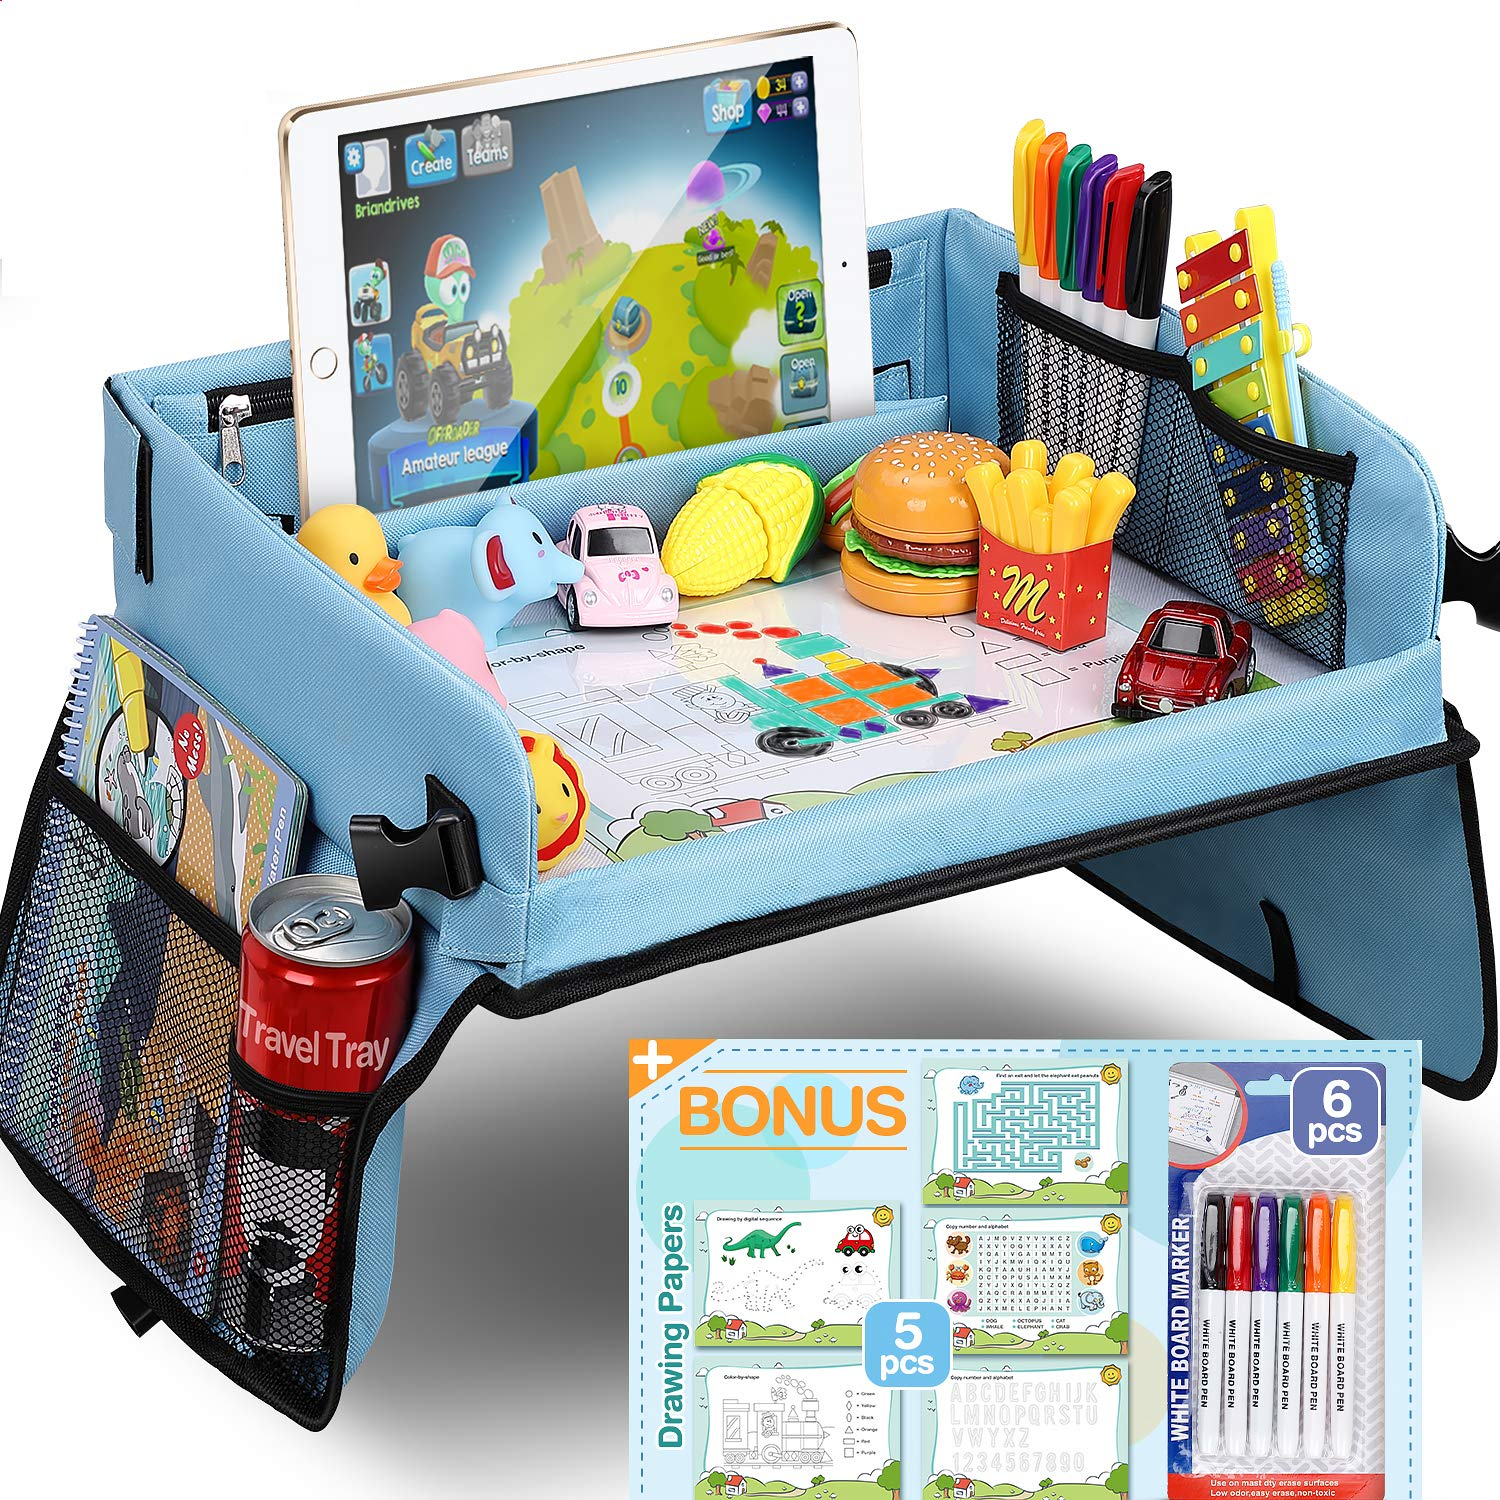 Waterproof Tablet Holder DMoose Toddler Car Seat Travel Tray Strong Buckles Reinforced Surface Sturdy Base /& Side Walls 16 x 14 Toy Organizer Crayon Organizer Mesh Pockets